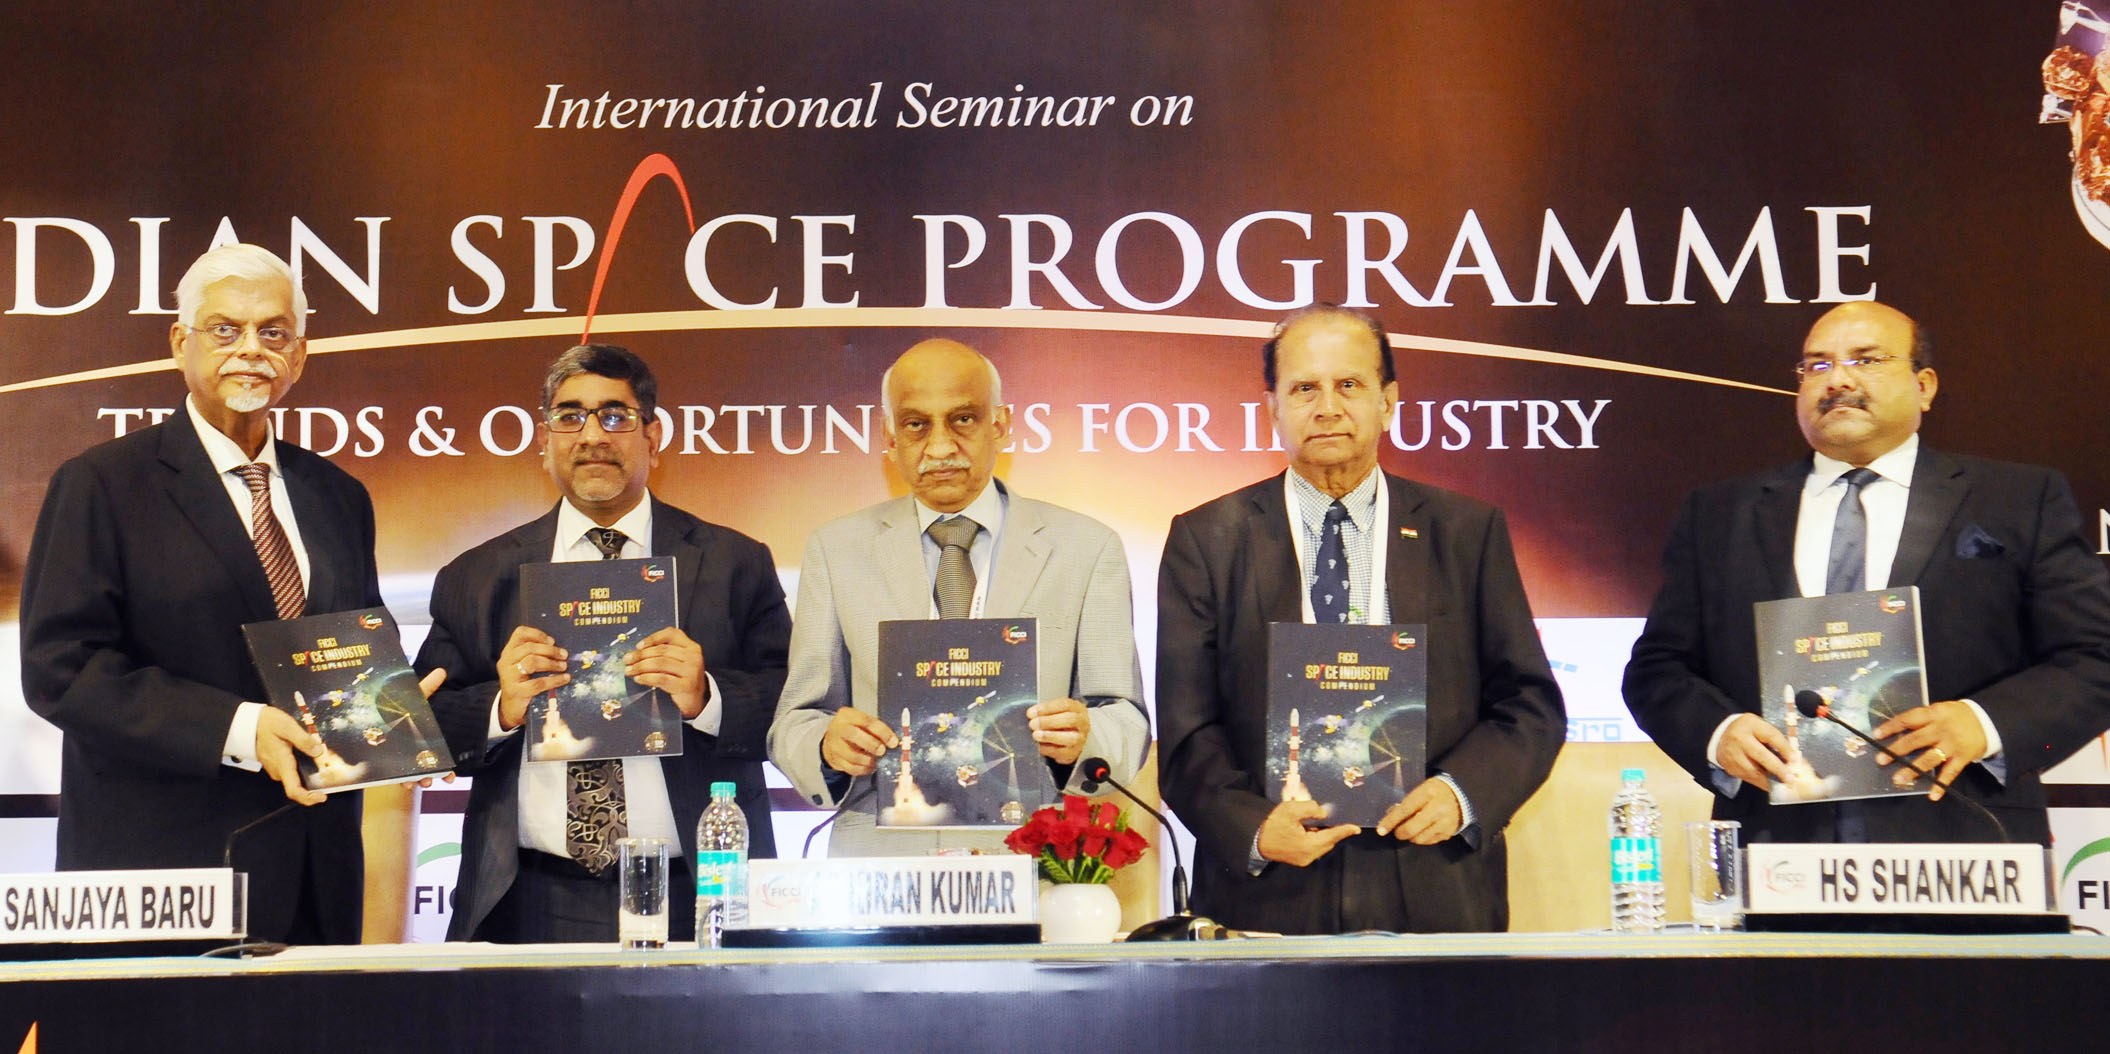 The Secretary, Department of Space, Chairman, Space Commission and Chairman, Indian Space Research Organisation (ISRO), Shri Kiran Kumar releasing the Compendium on Indian Space Industry, at the inauguration of the International Seminar on Indian Space Programme : 'Trends and Opportunities for Industry', in New Delhi on November 20, 2017.